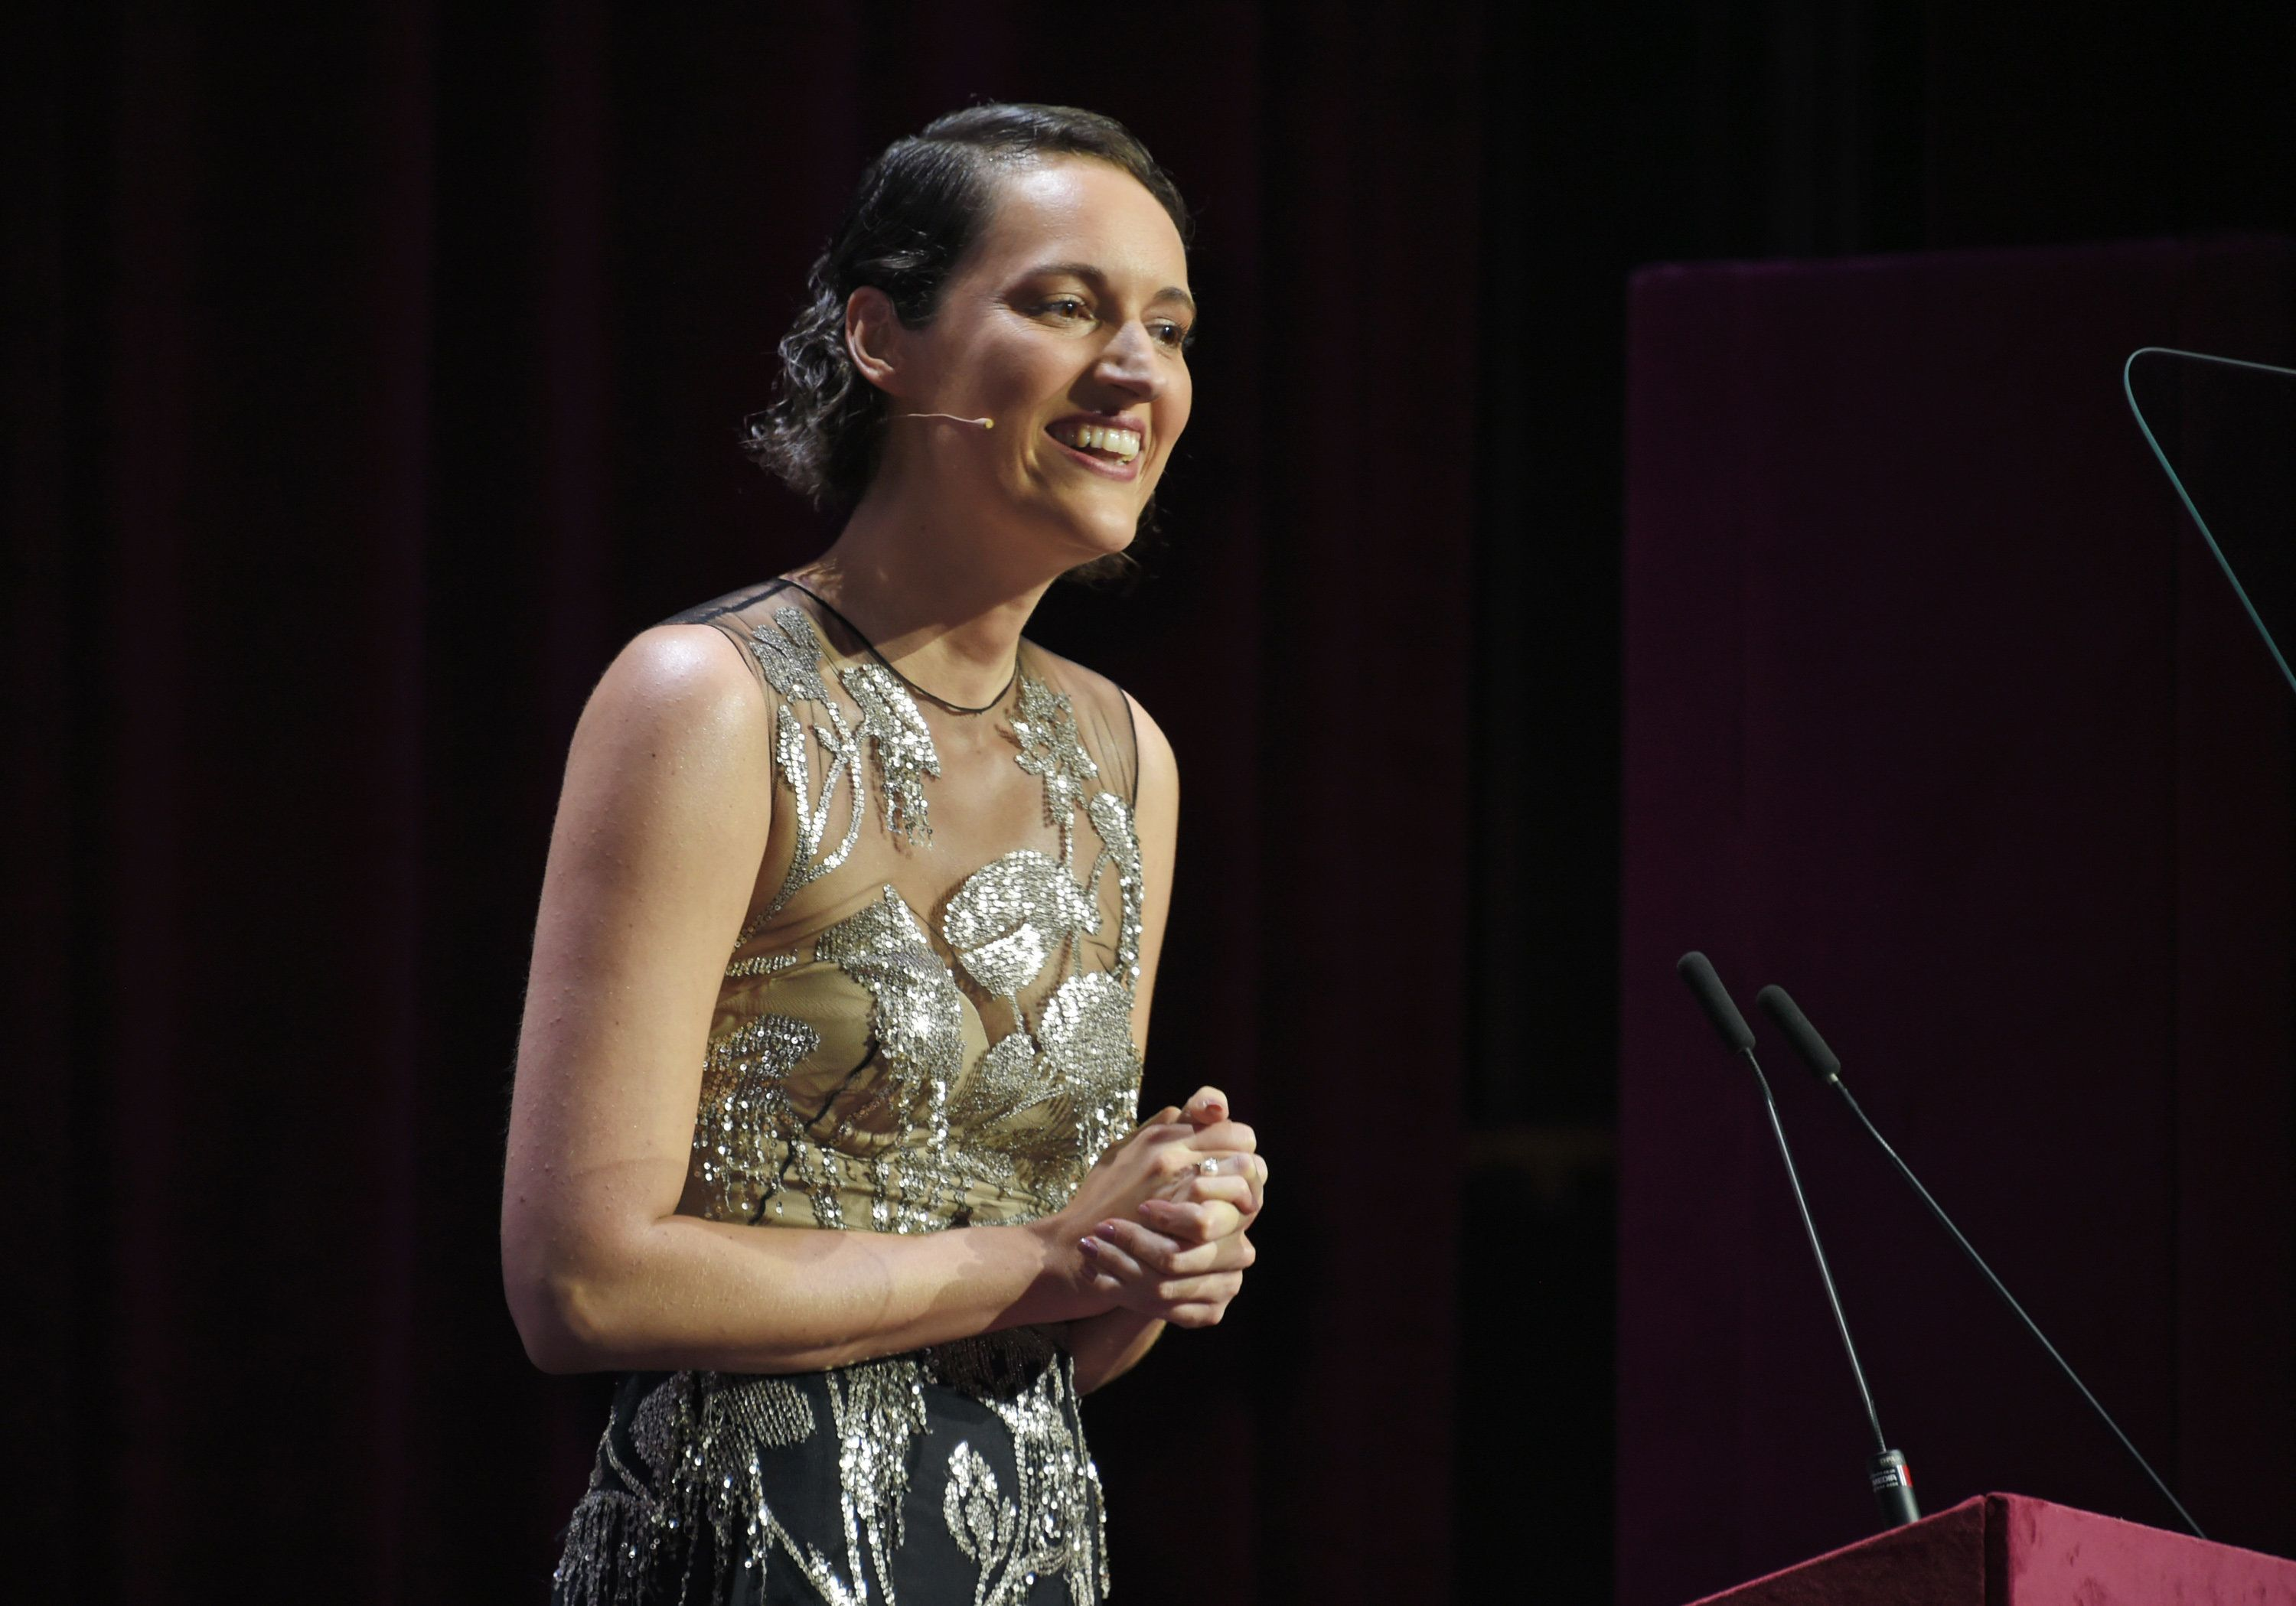 Phoebe Waller-Bridge speaks at the London Evening Standard Theatre Awards on Dec. 3.